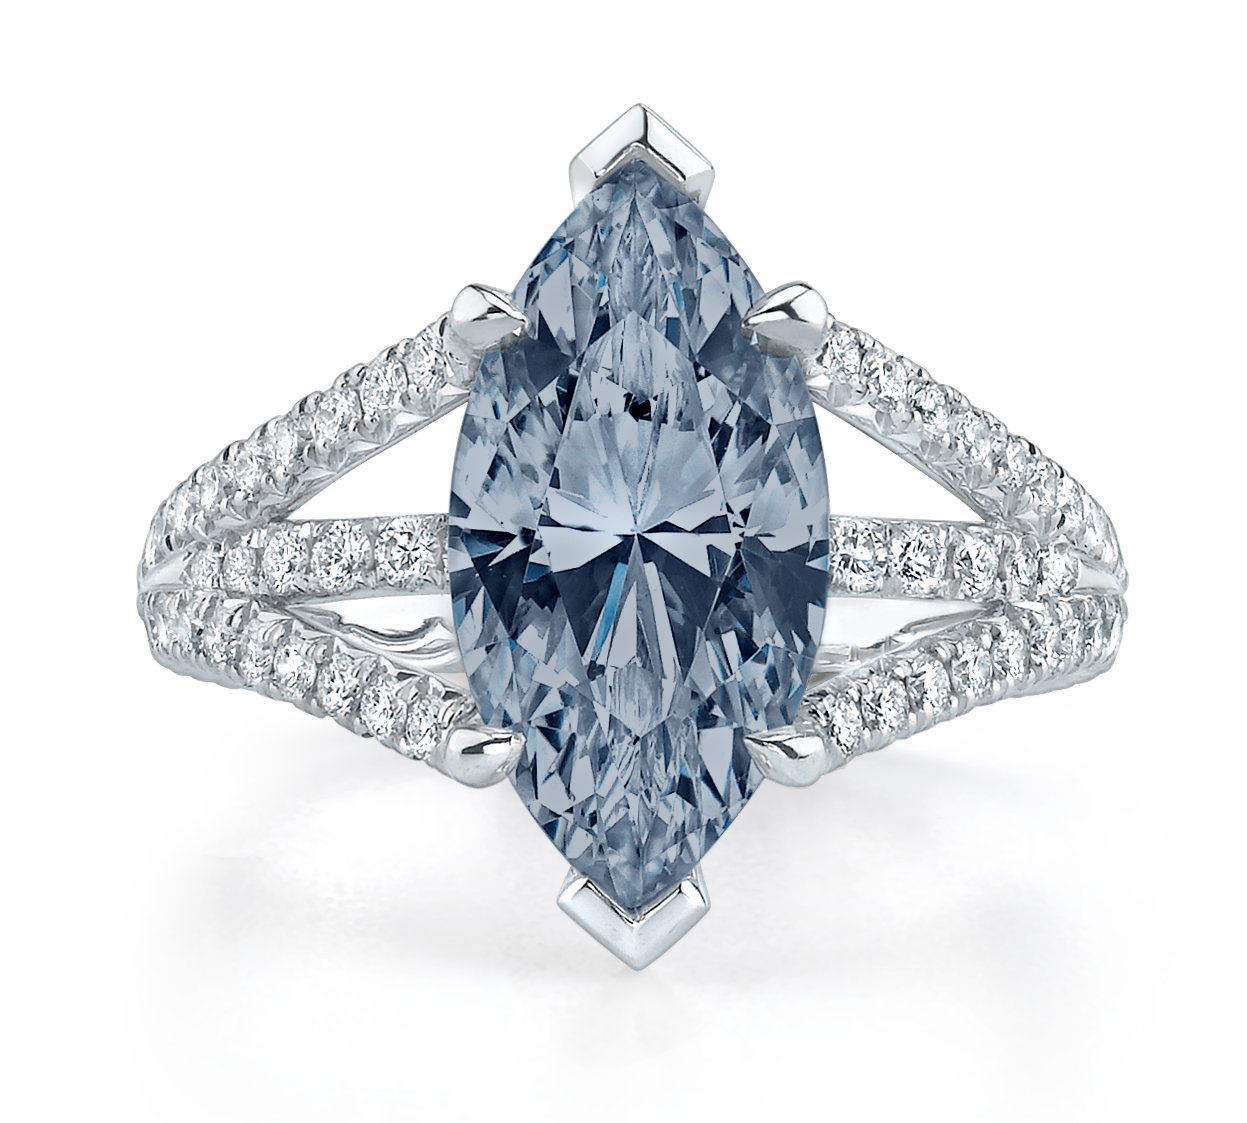 HENRIETTA  natural fancy blue marquise cut diamond set in a platinum triple shank setting. This design features french pave set round brilliant accent diamonds and a diamond bezeled basket below the center diamond.